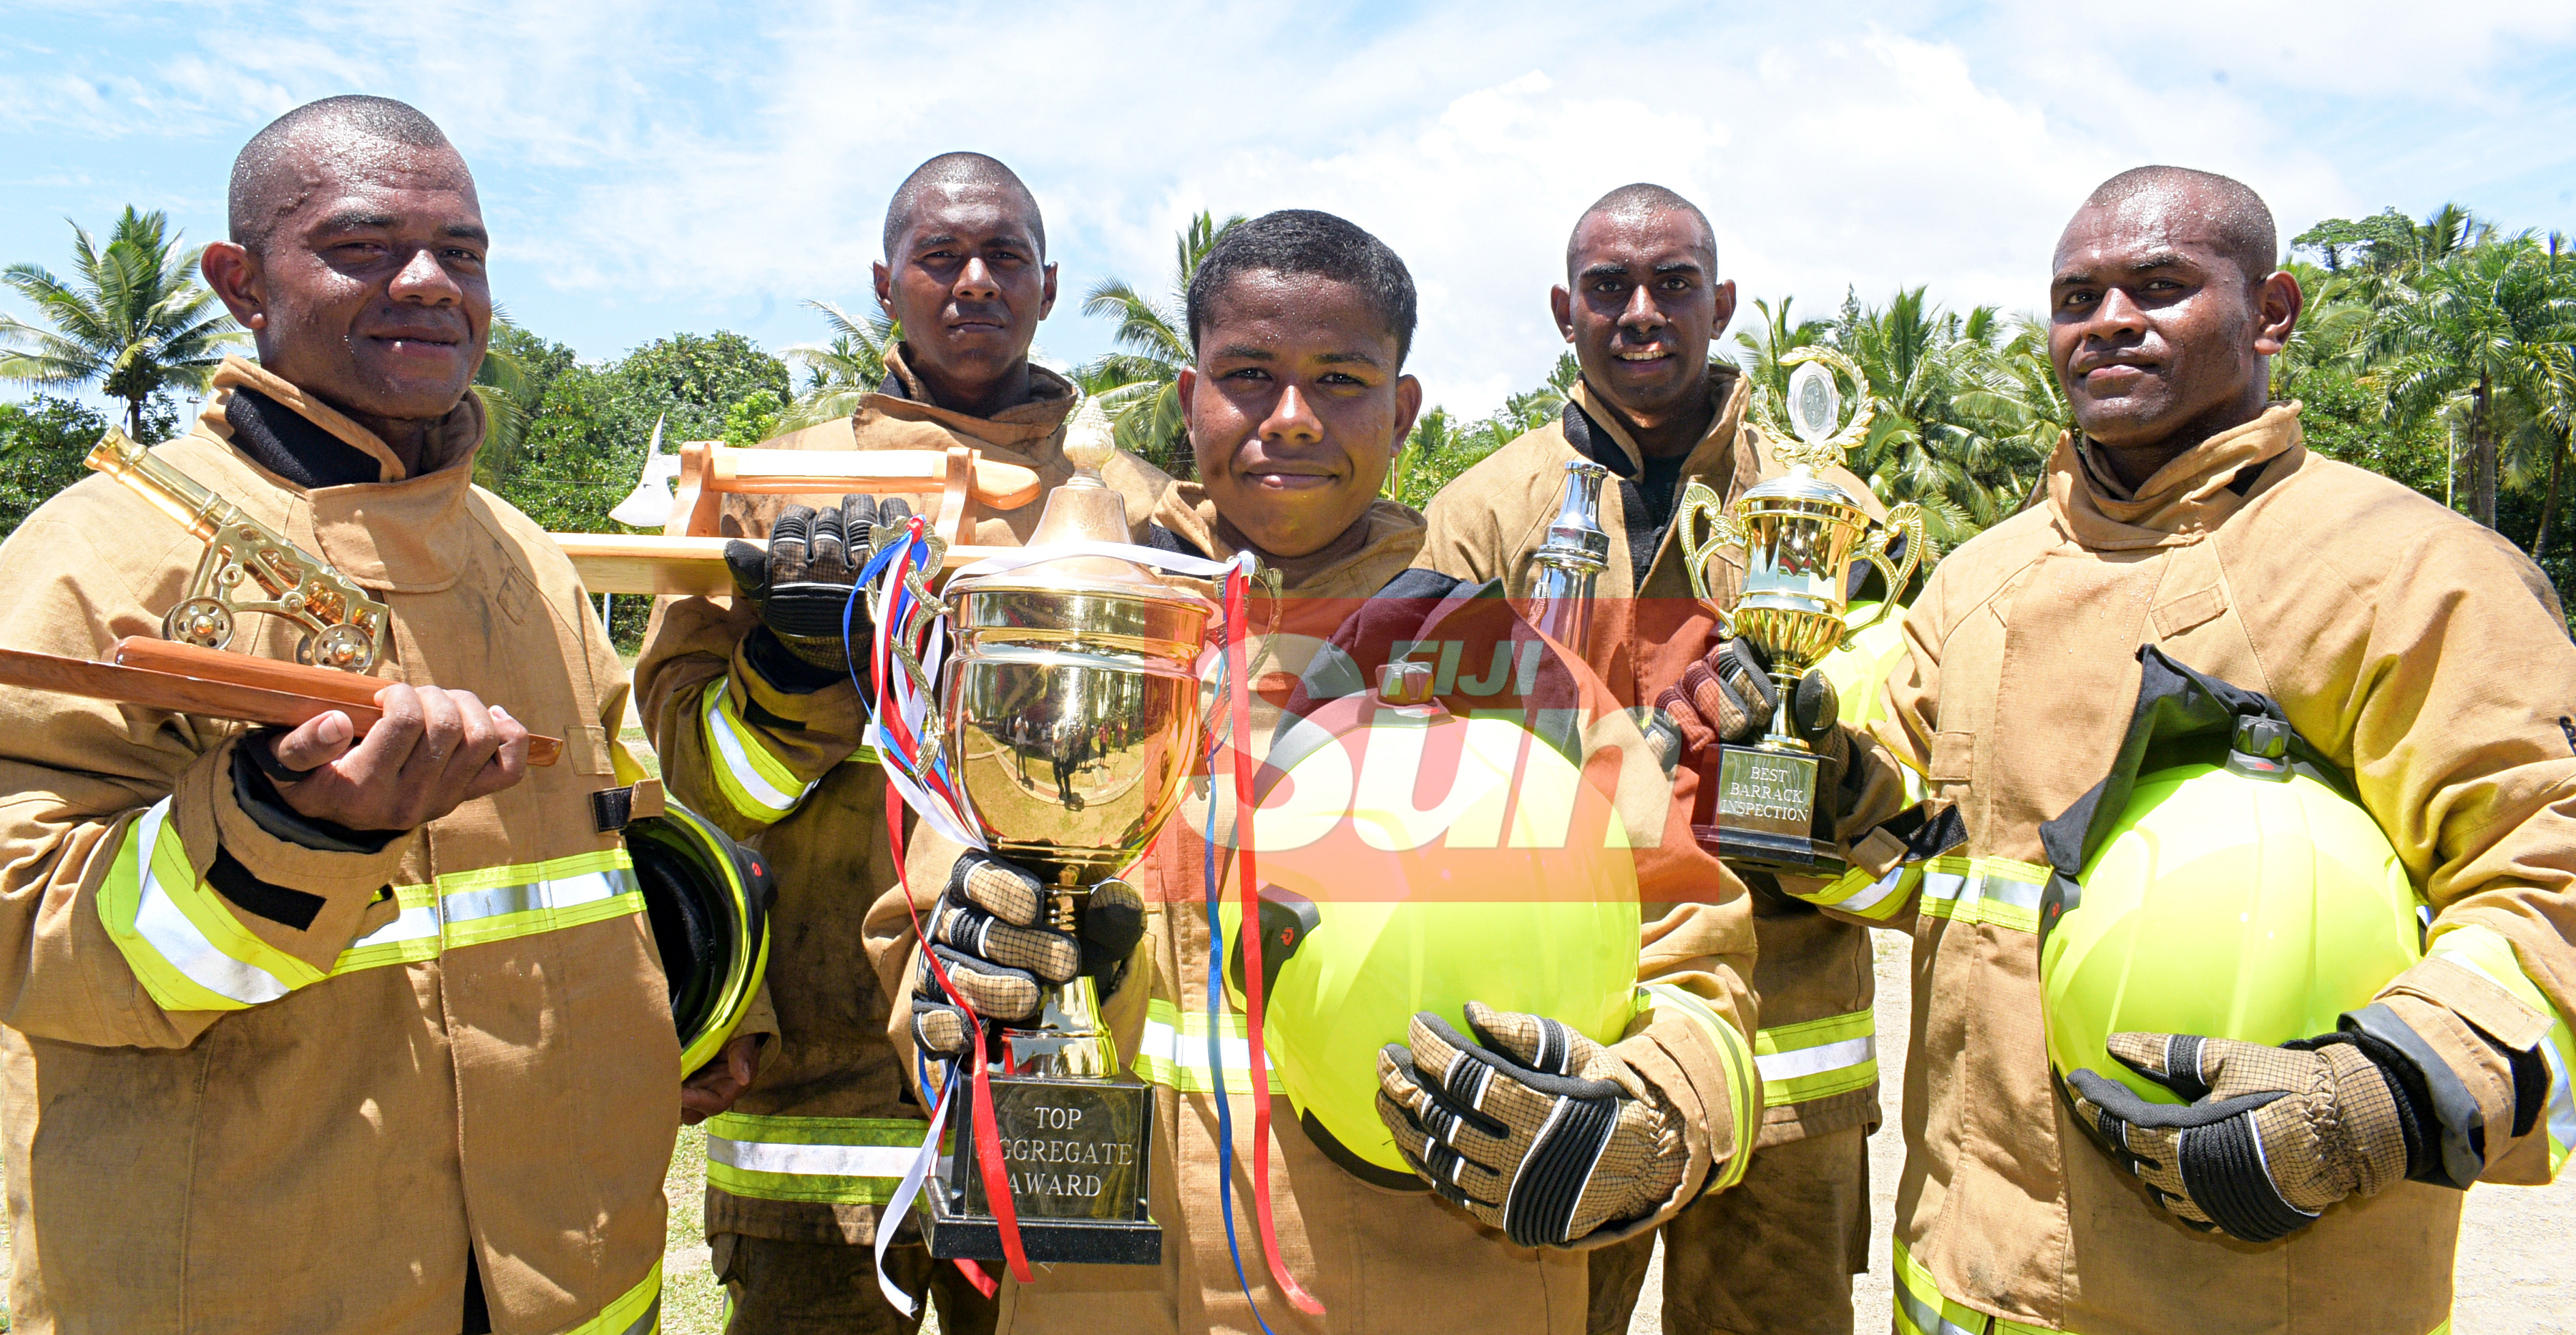 National Fire Authority pass out parade, (from left) Joeli Lesivanawa with most outstanding division on parade award,  Akuila Ciqa with best all rounder award, Neli Vugakoto with highest aggregate award,  Best Student in Drill, Vereti Naruku with best Student in drill and Eremodo Ratu with best barrack inspection award at at Navy Training base in Togalevu Veisari, Lami on December 11, 2019. Photo: Ronald Kumar.